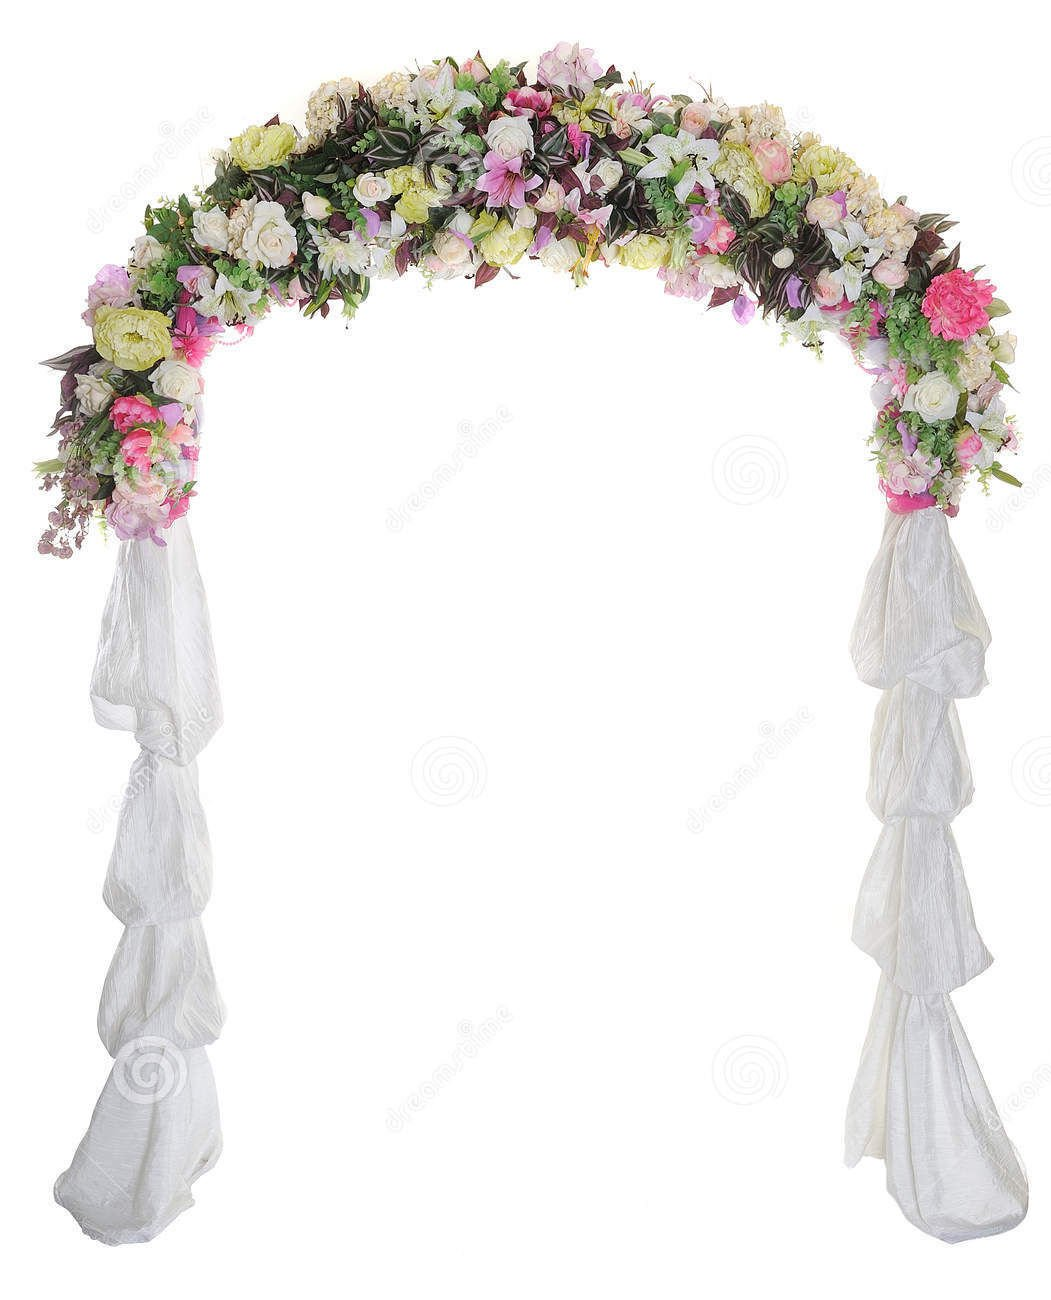 Amazon wedding arch way garden quinceanera party flowers amazon wedding arch way garden quinceanera party flowers balloon decoration white metal gh45843 3468 t34562fd406659 home kitchen junglespirit